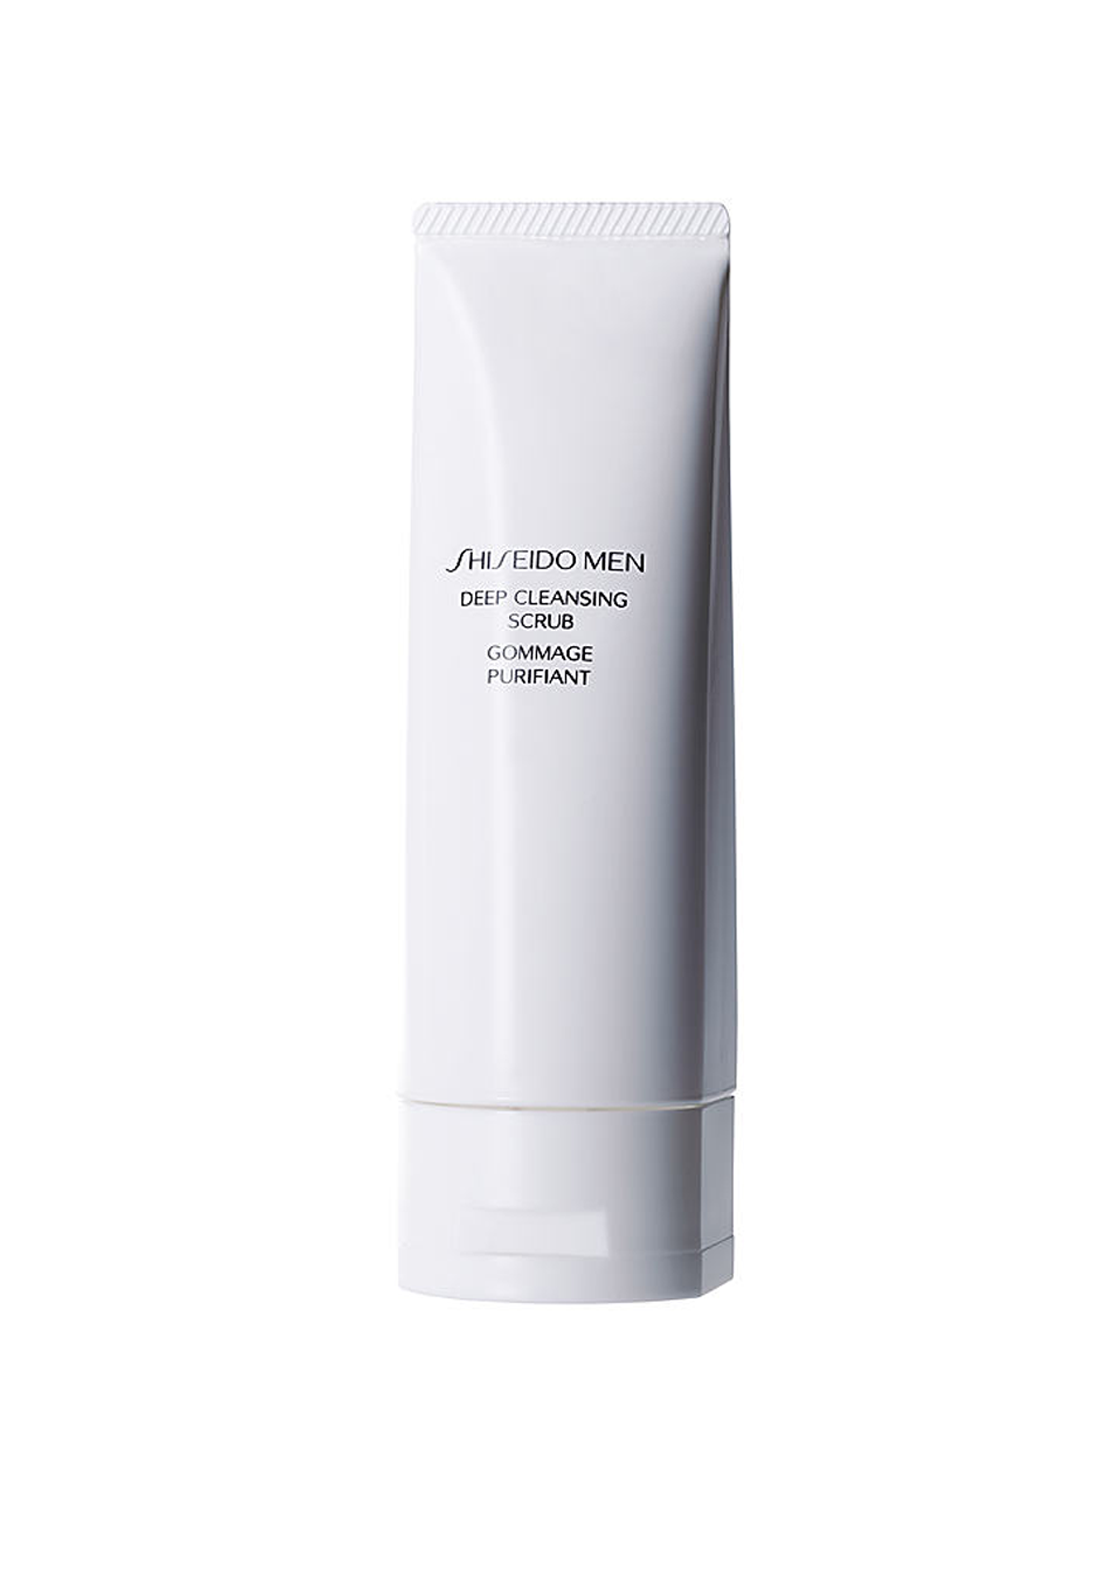 Shiseido Men Deep Cleansing Scrub, 125ml